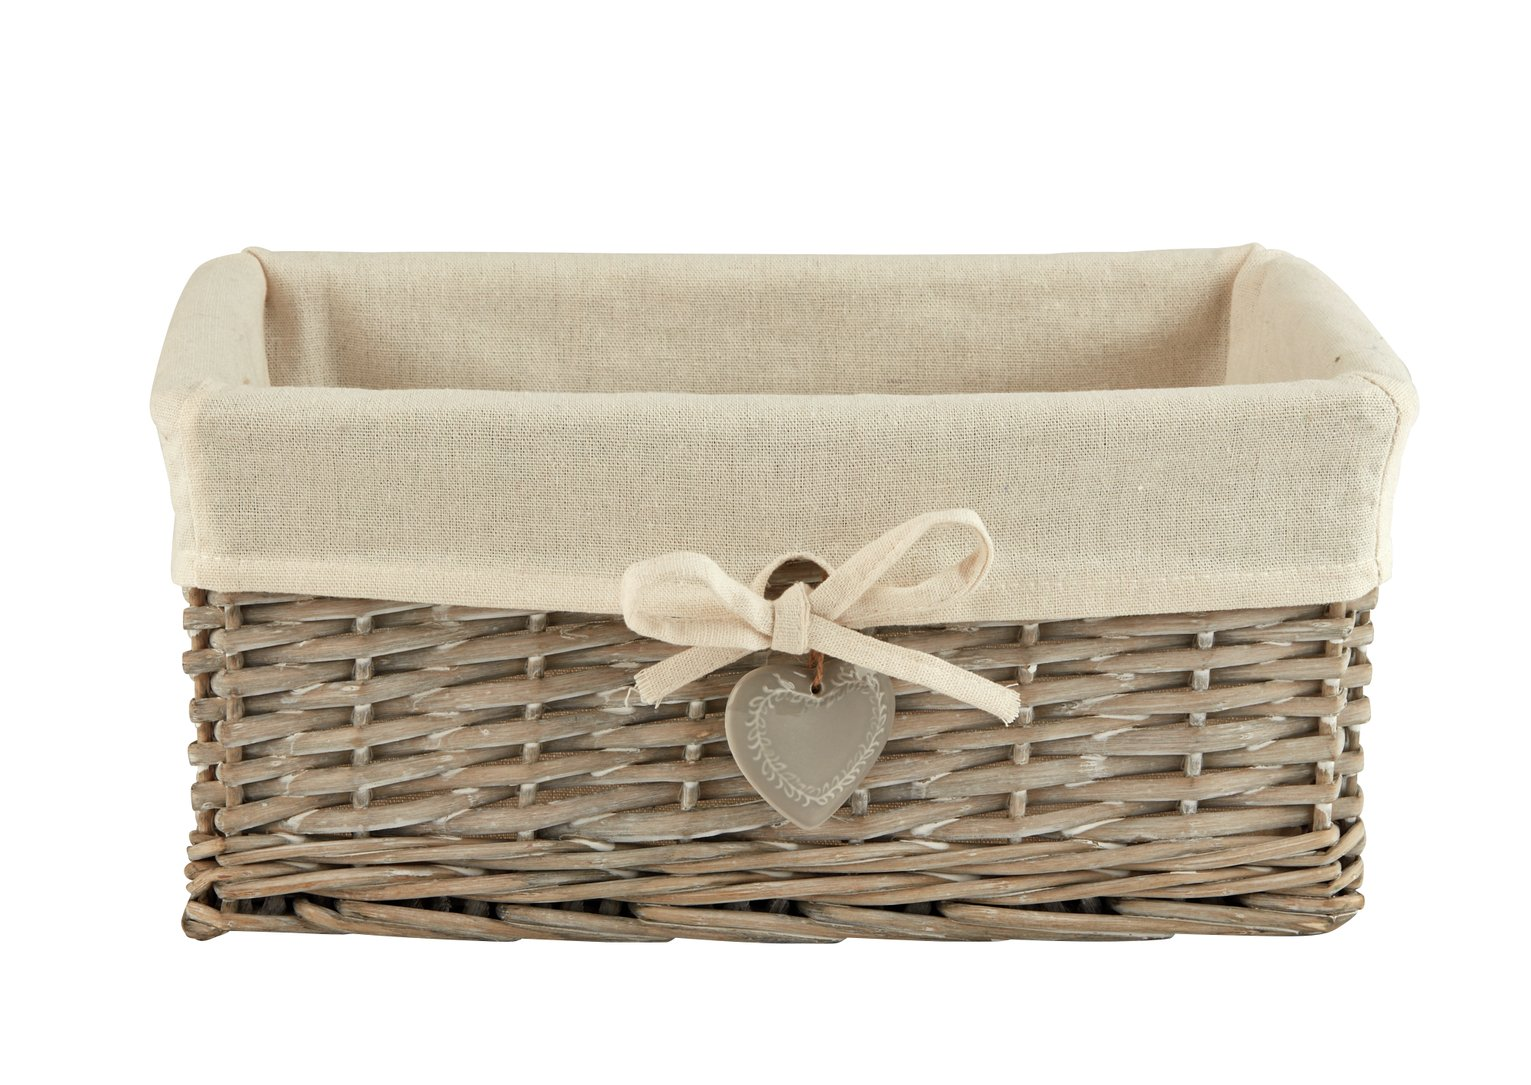 Sainsburyu0027s Home Wicker Basket   Grey